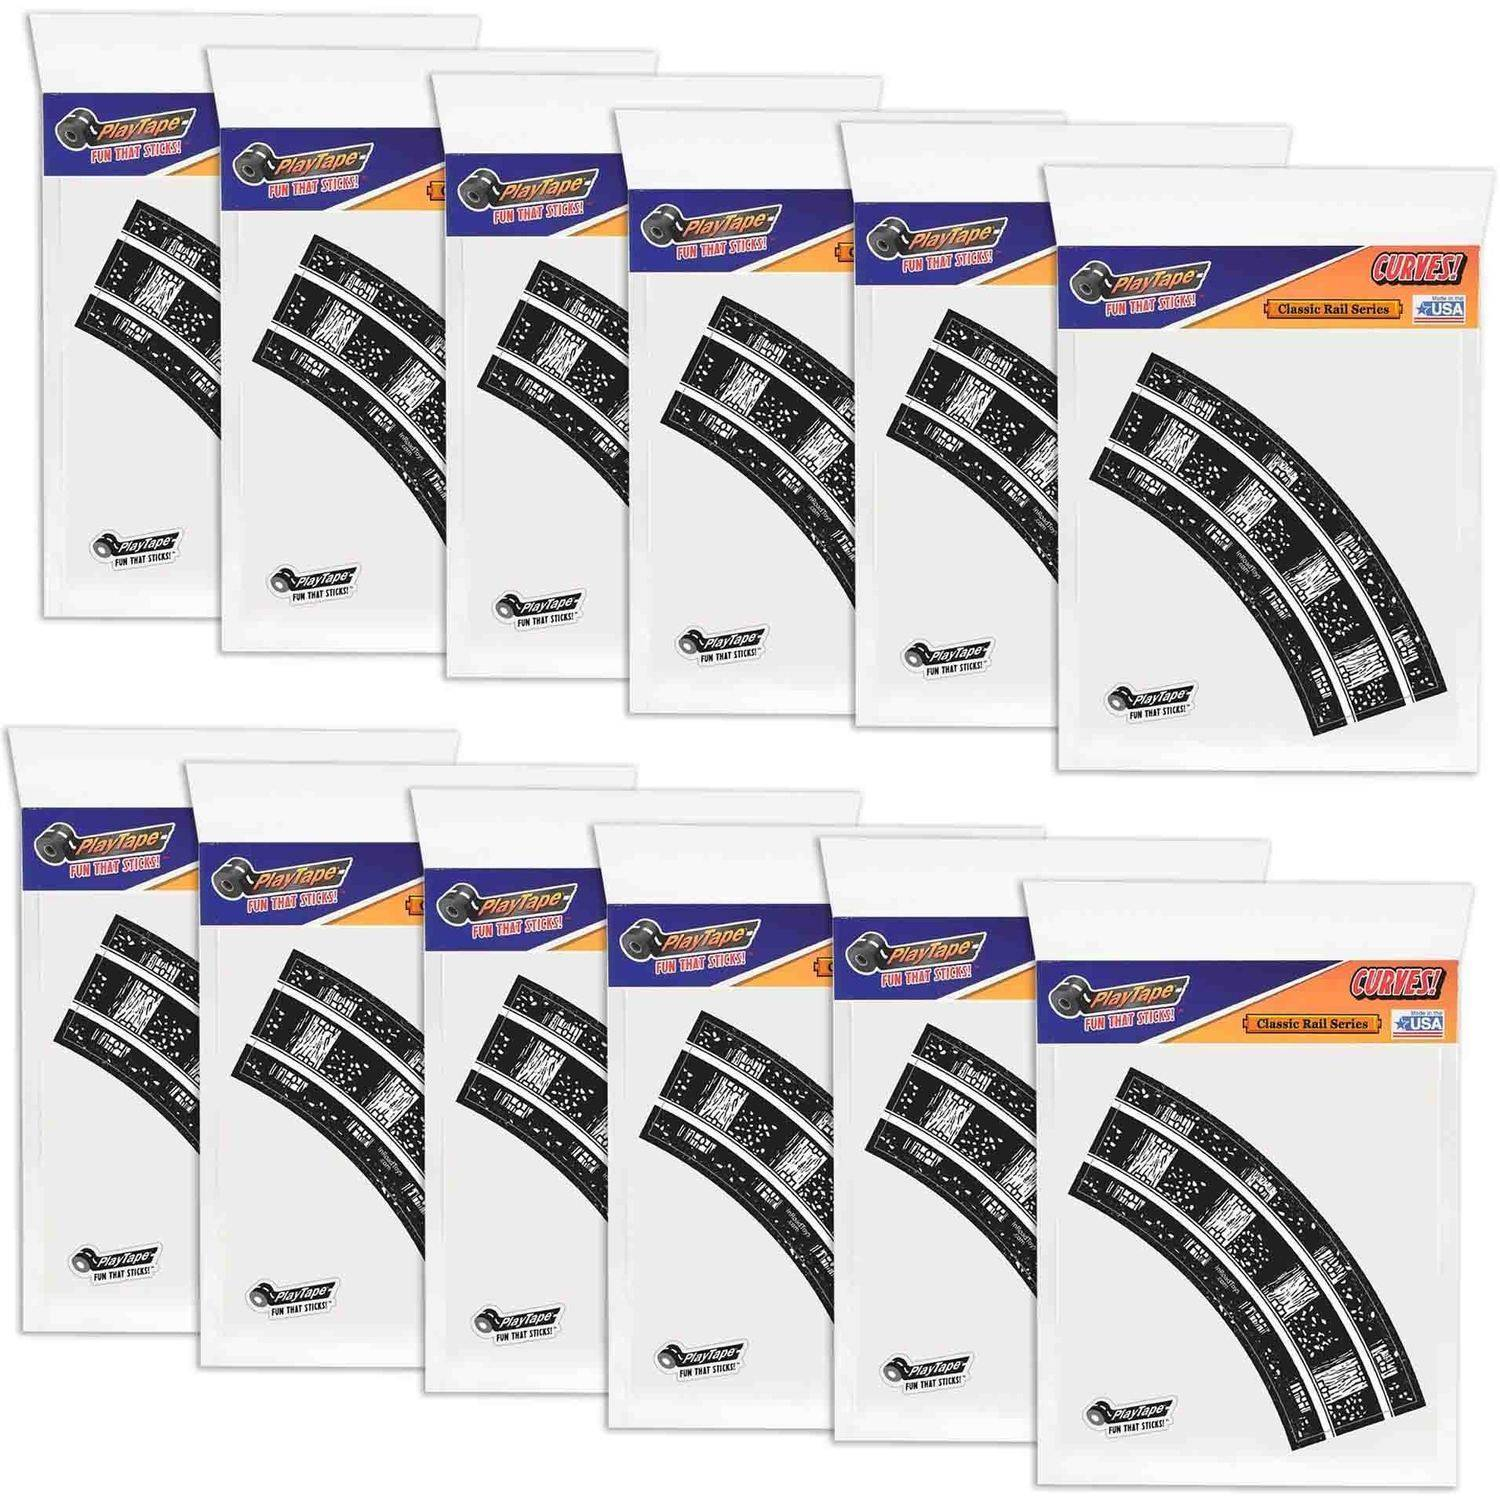 "PlayTape Off-Road Series Bundle 2"" Train Track Curves, Full Case with 48 Curves"